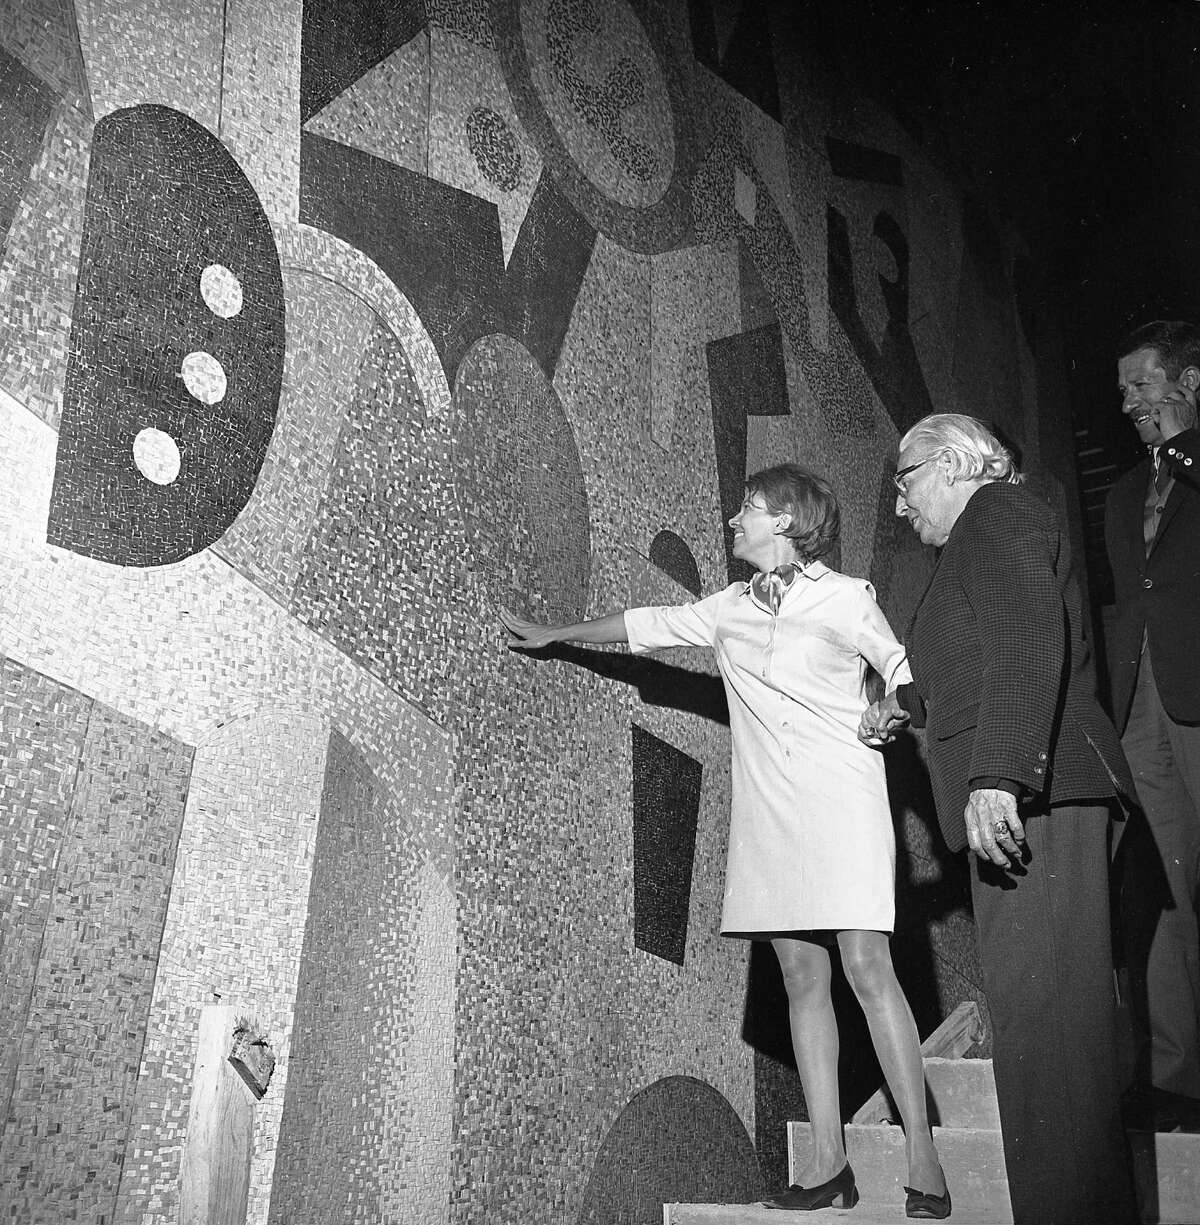 Mural artist Carlos Merida is shown in this Nov. 22, 1967, Express staff photo with Nancy Brown Negley, who commissioned it. Merida is seeing the mural installed in its final location for the first time. The man on the far right is unidentified. Credit: UTSA Libraries Special Collections/Express-News Collection